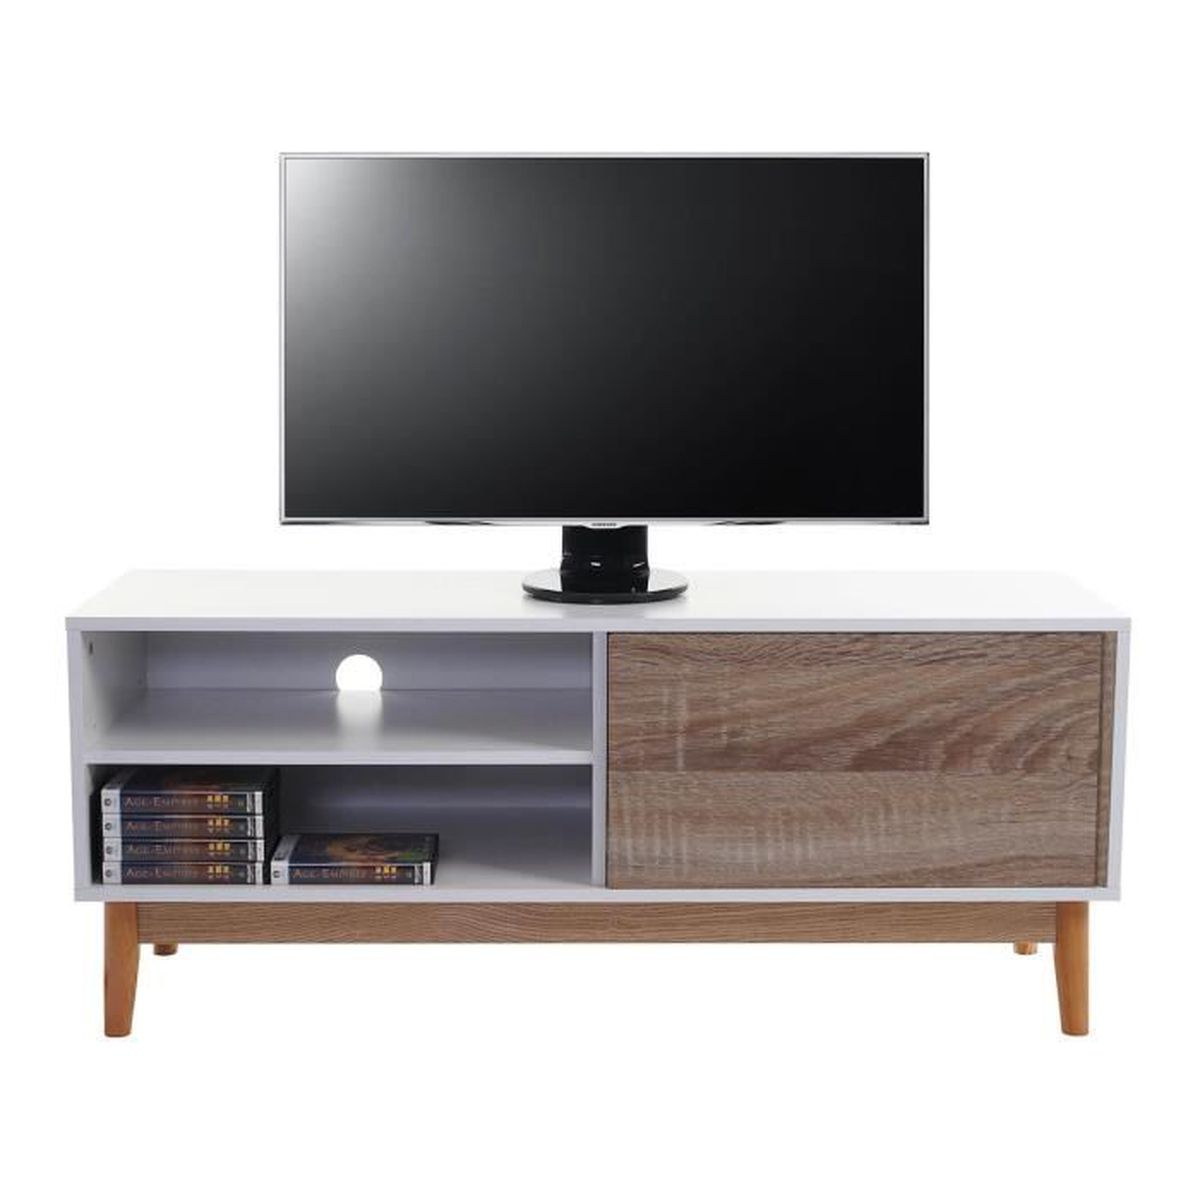 Meuble tv en long en rack 2 coloris achat vente meuble for Long meuble tv